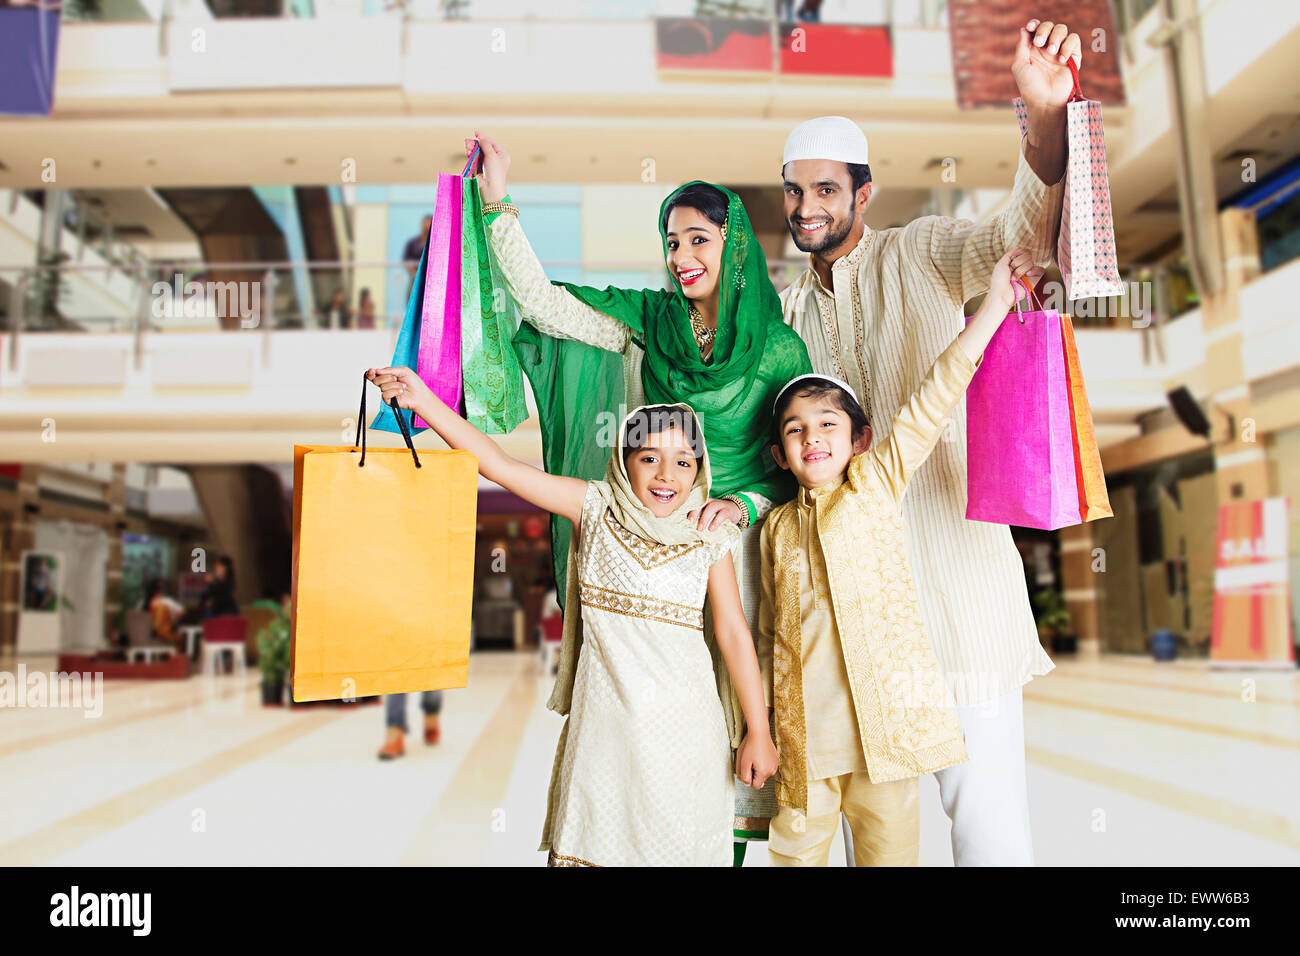 indian Muslim Parents and kids mall shopping - Stock Image